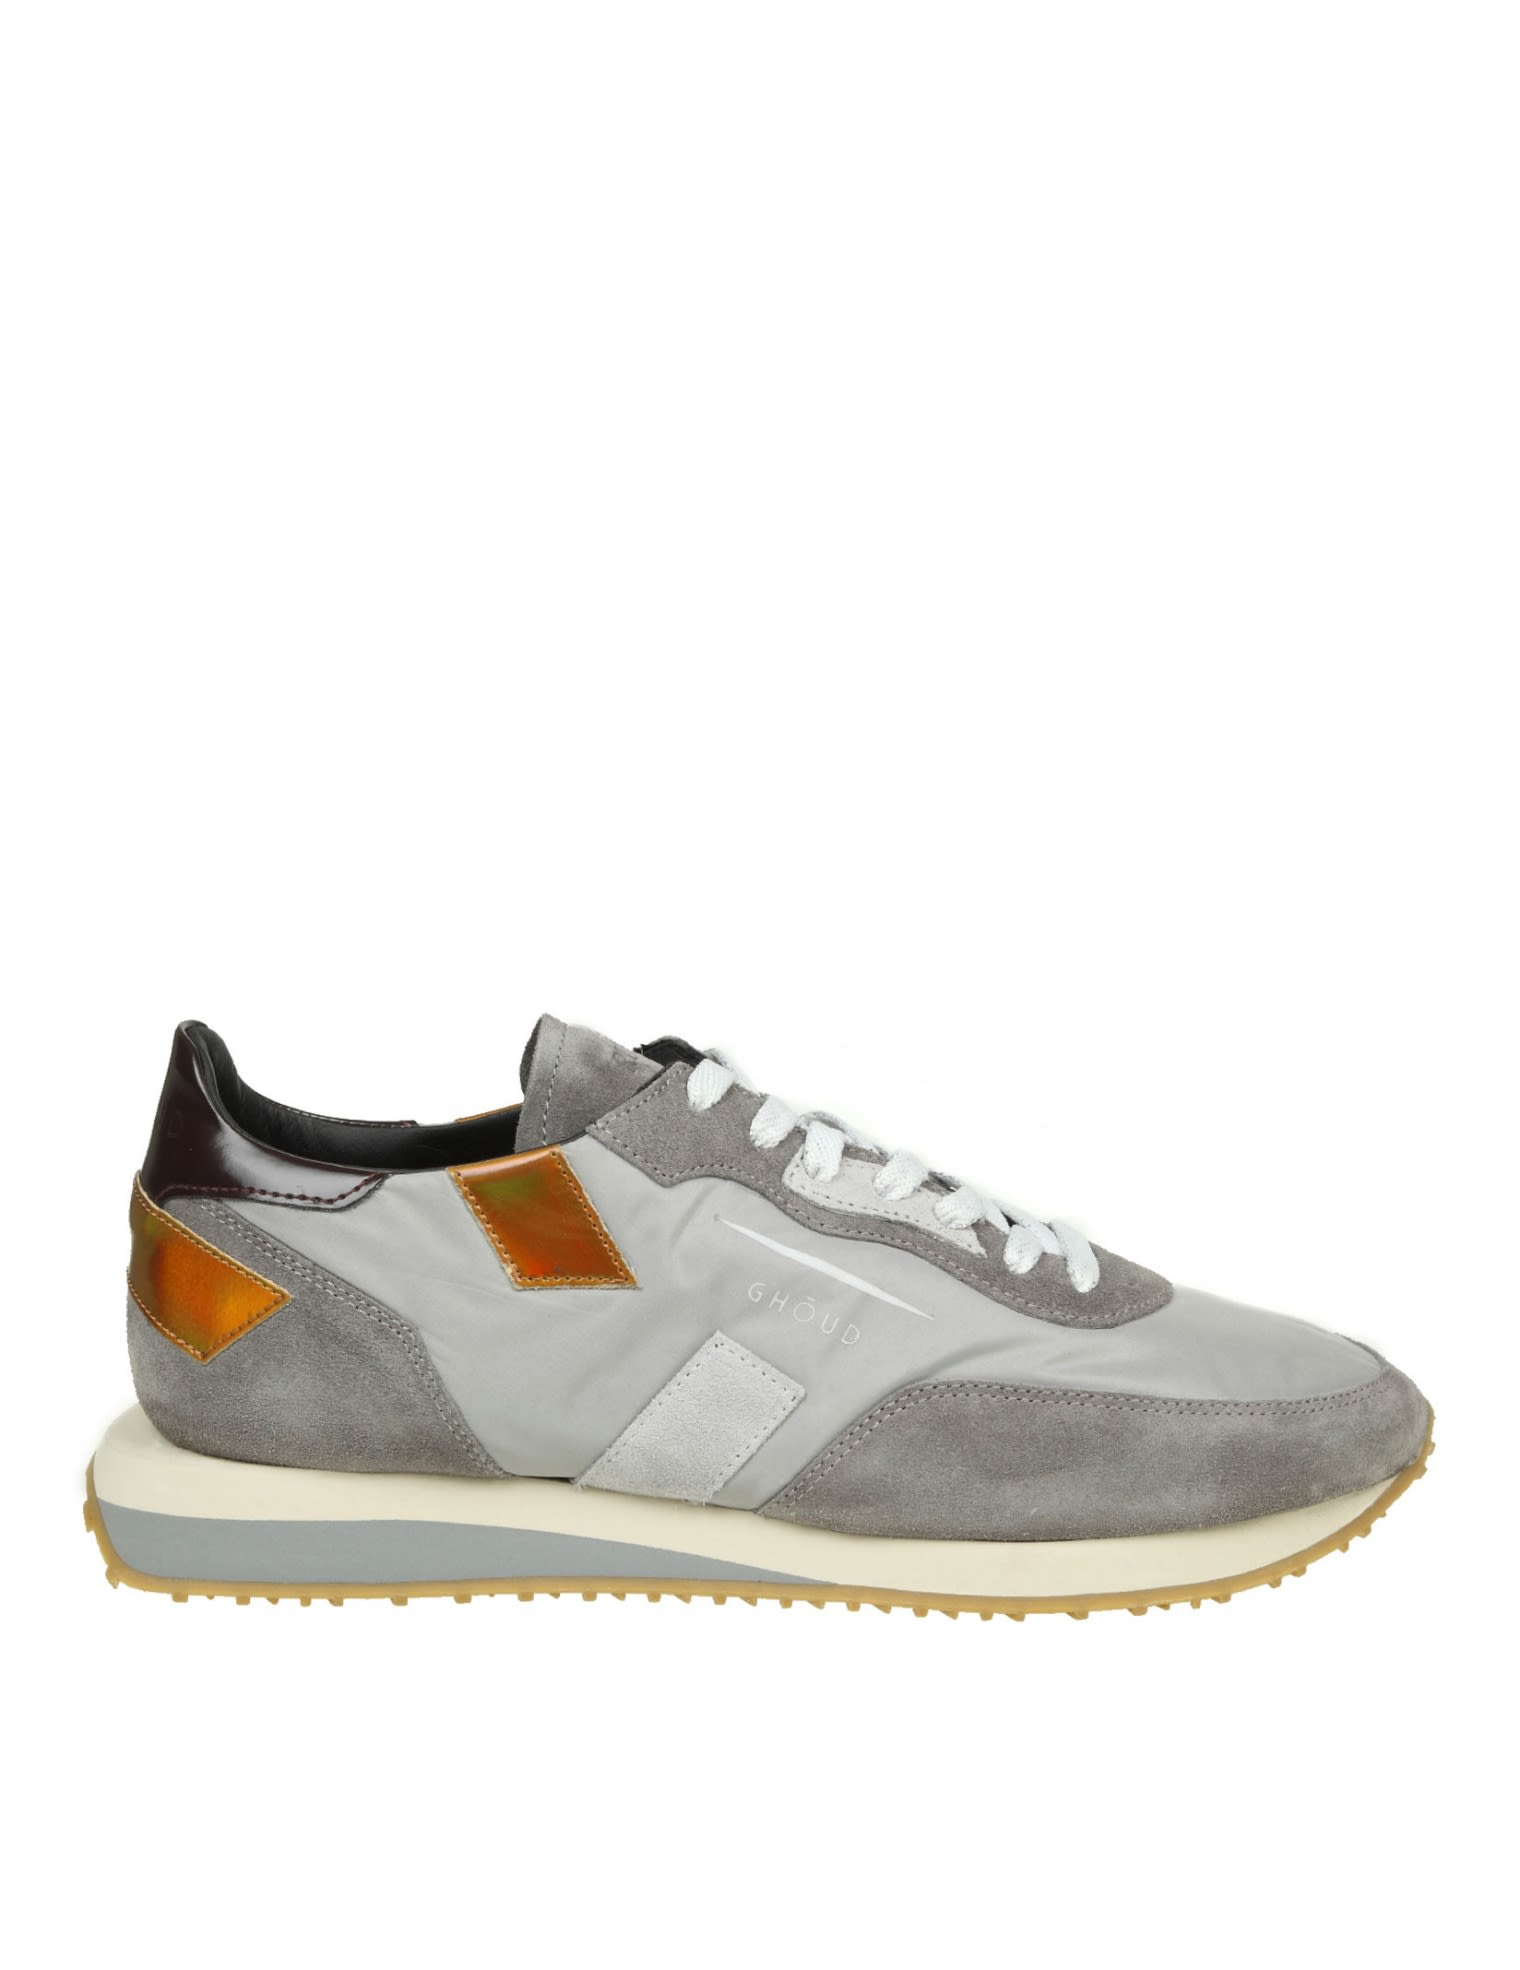 RUSH GHOUD SNEAKERS IN GRAY SUEDE AND NYLON